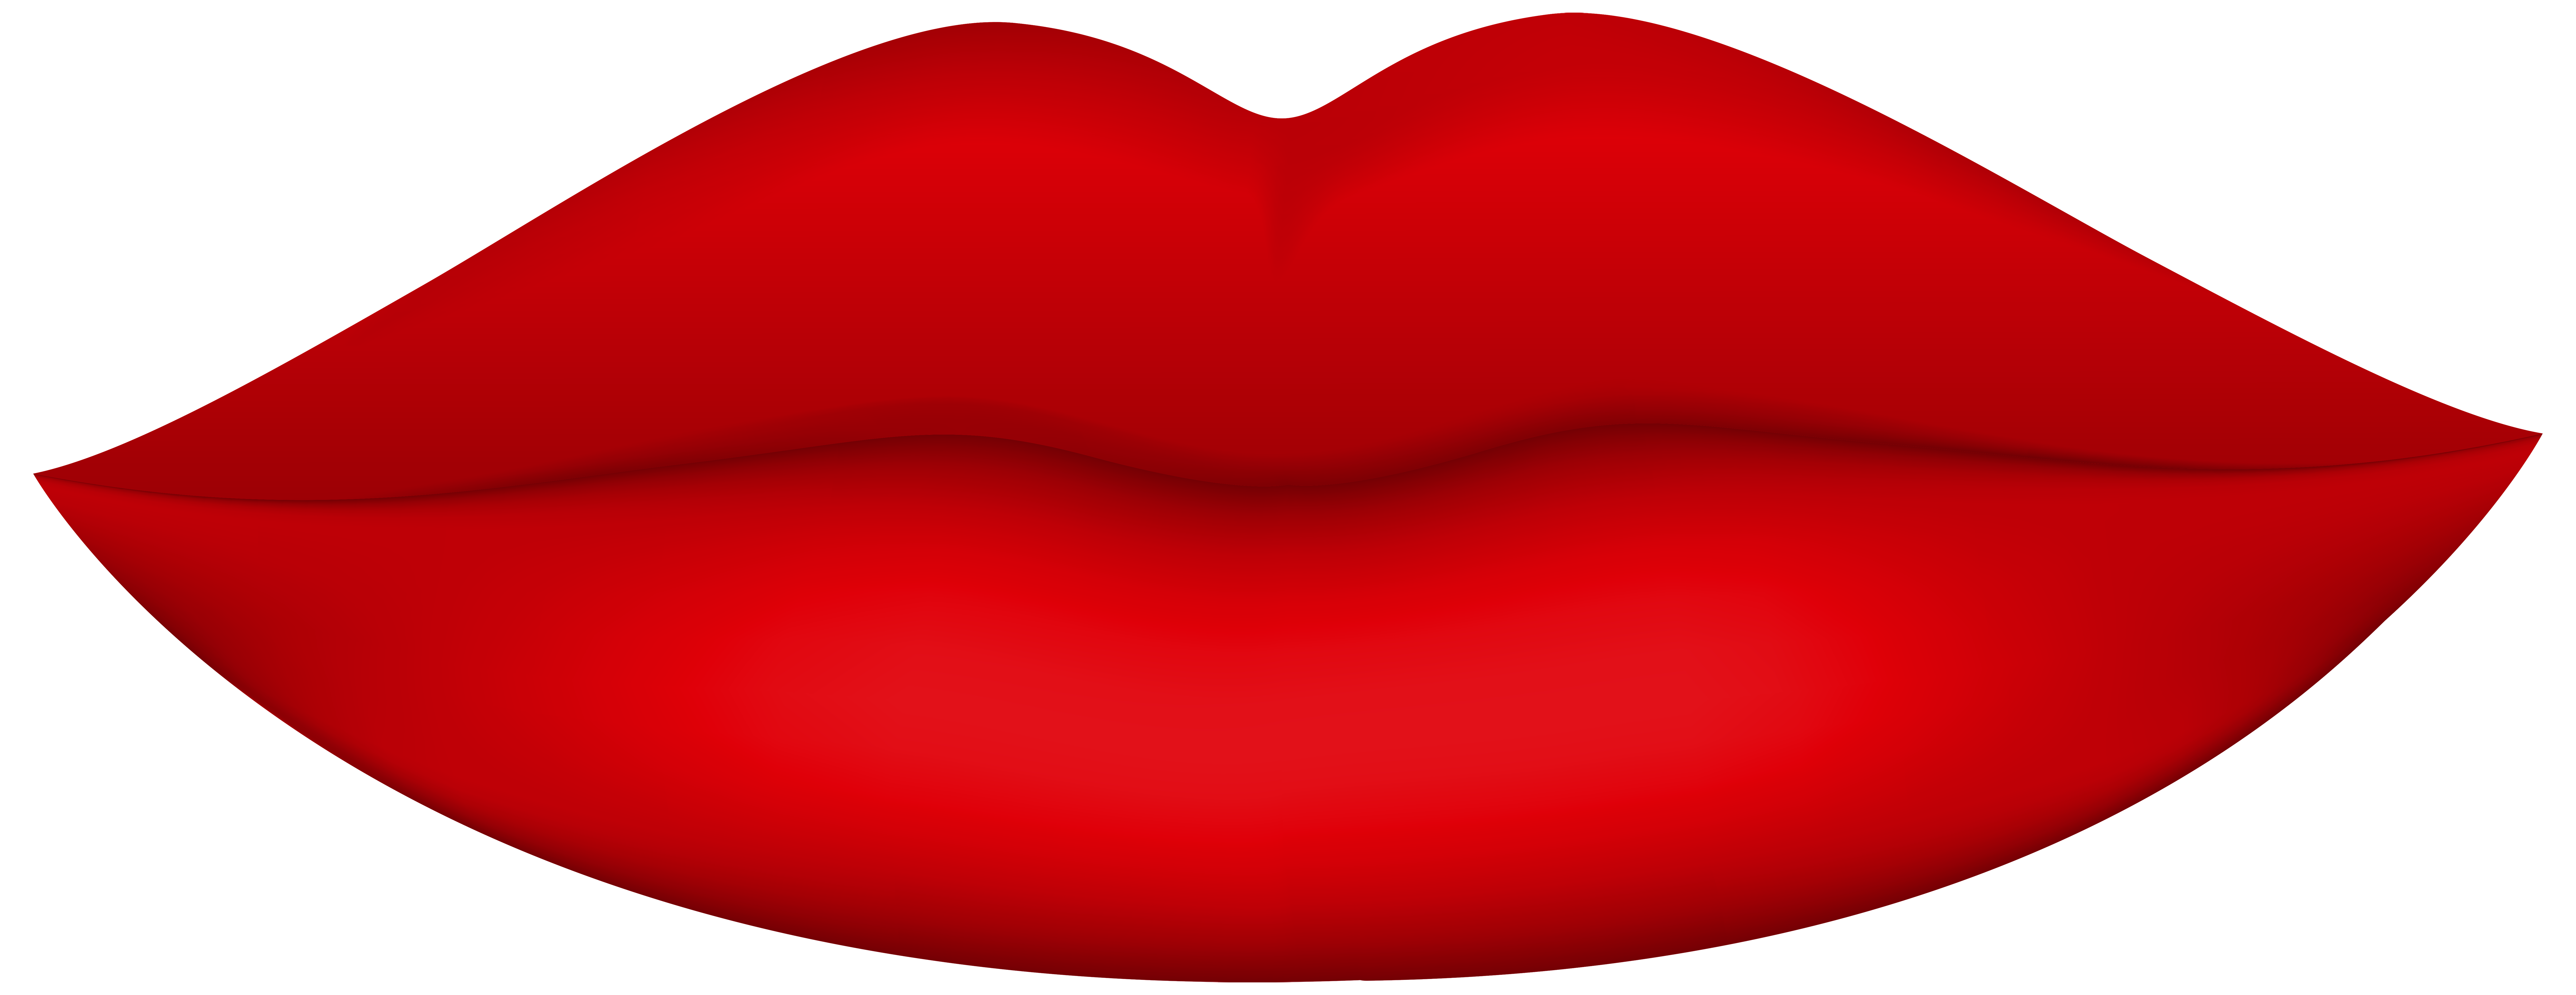 Red Lips PNG Clip Art-Red Lips PNG Clip Art-17